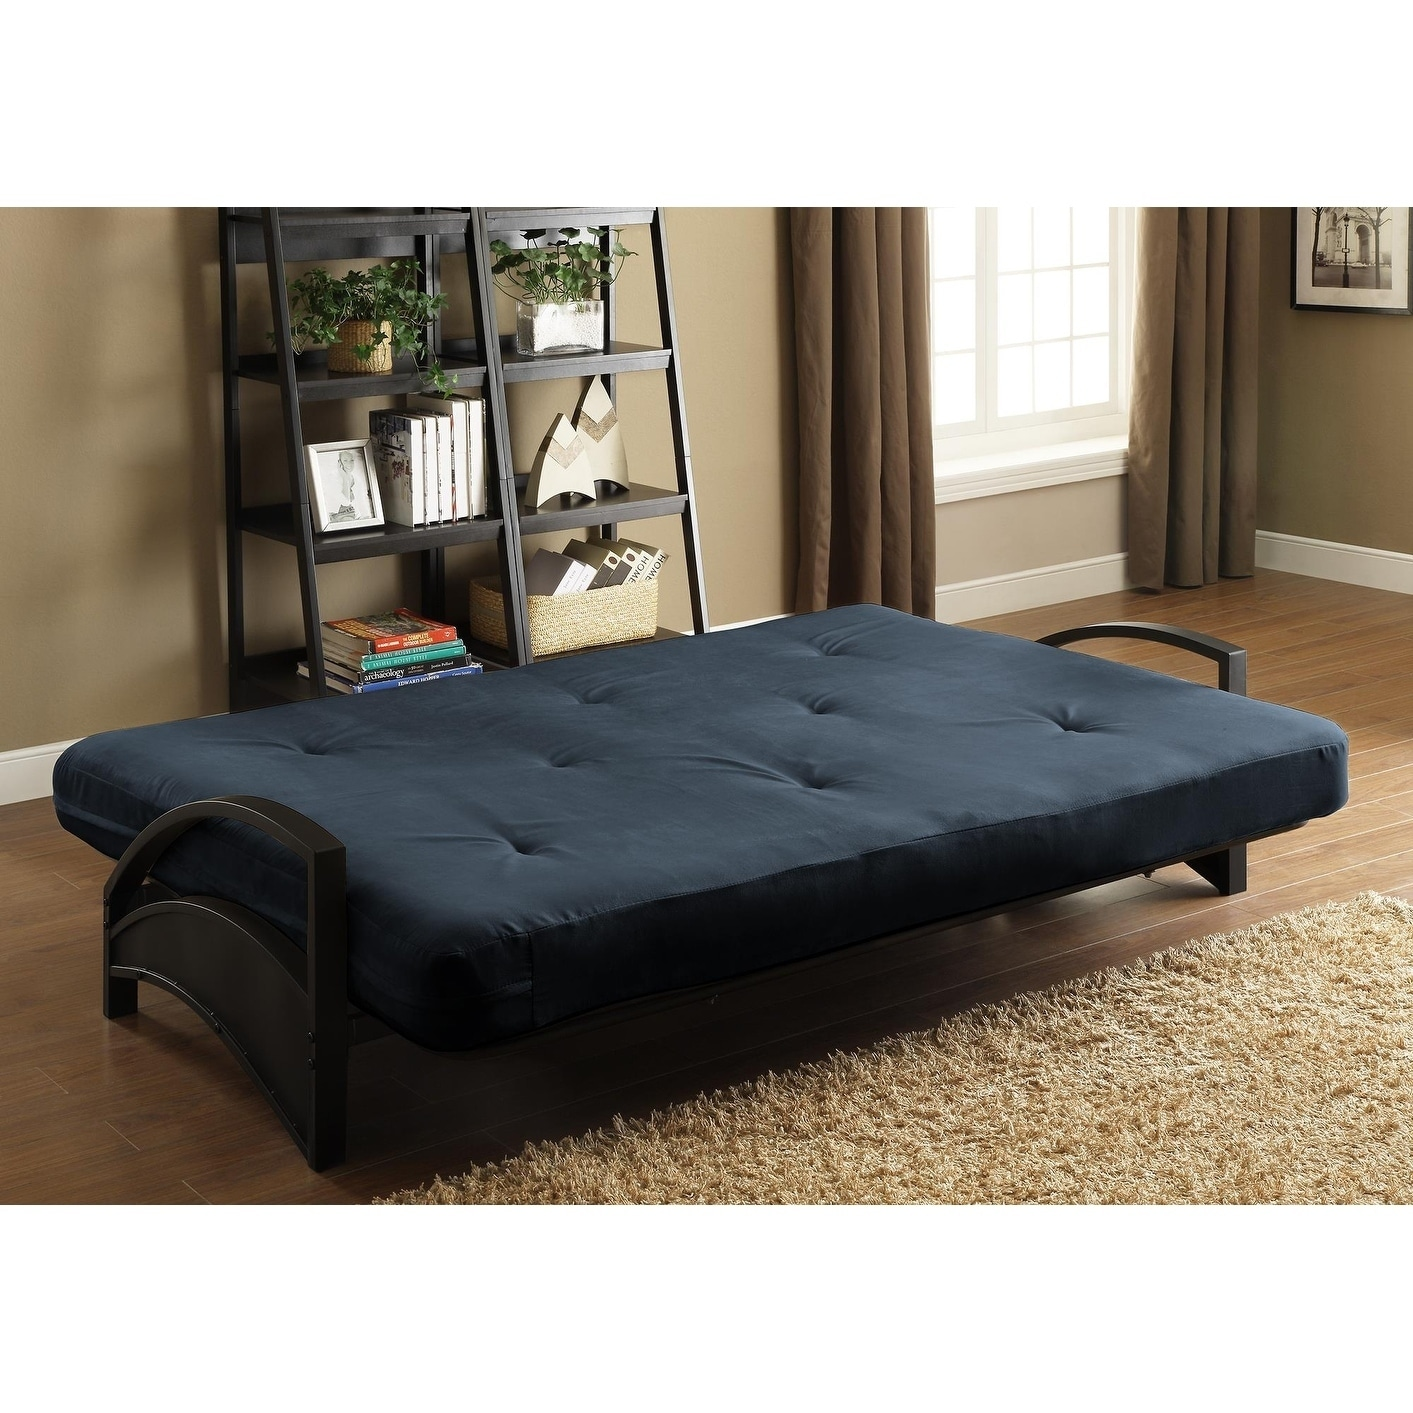 Dhp Alessa Black Futon Frame And 6 Inch Mattress Set On Free Shipping Today Com 22899186